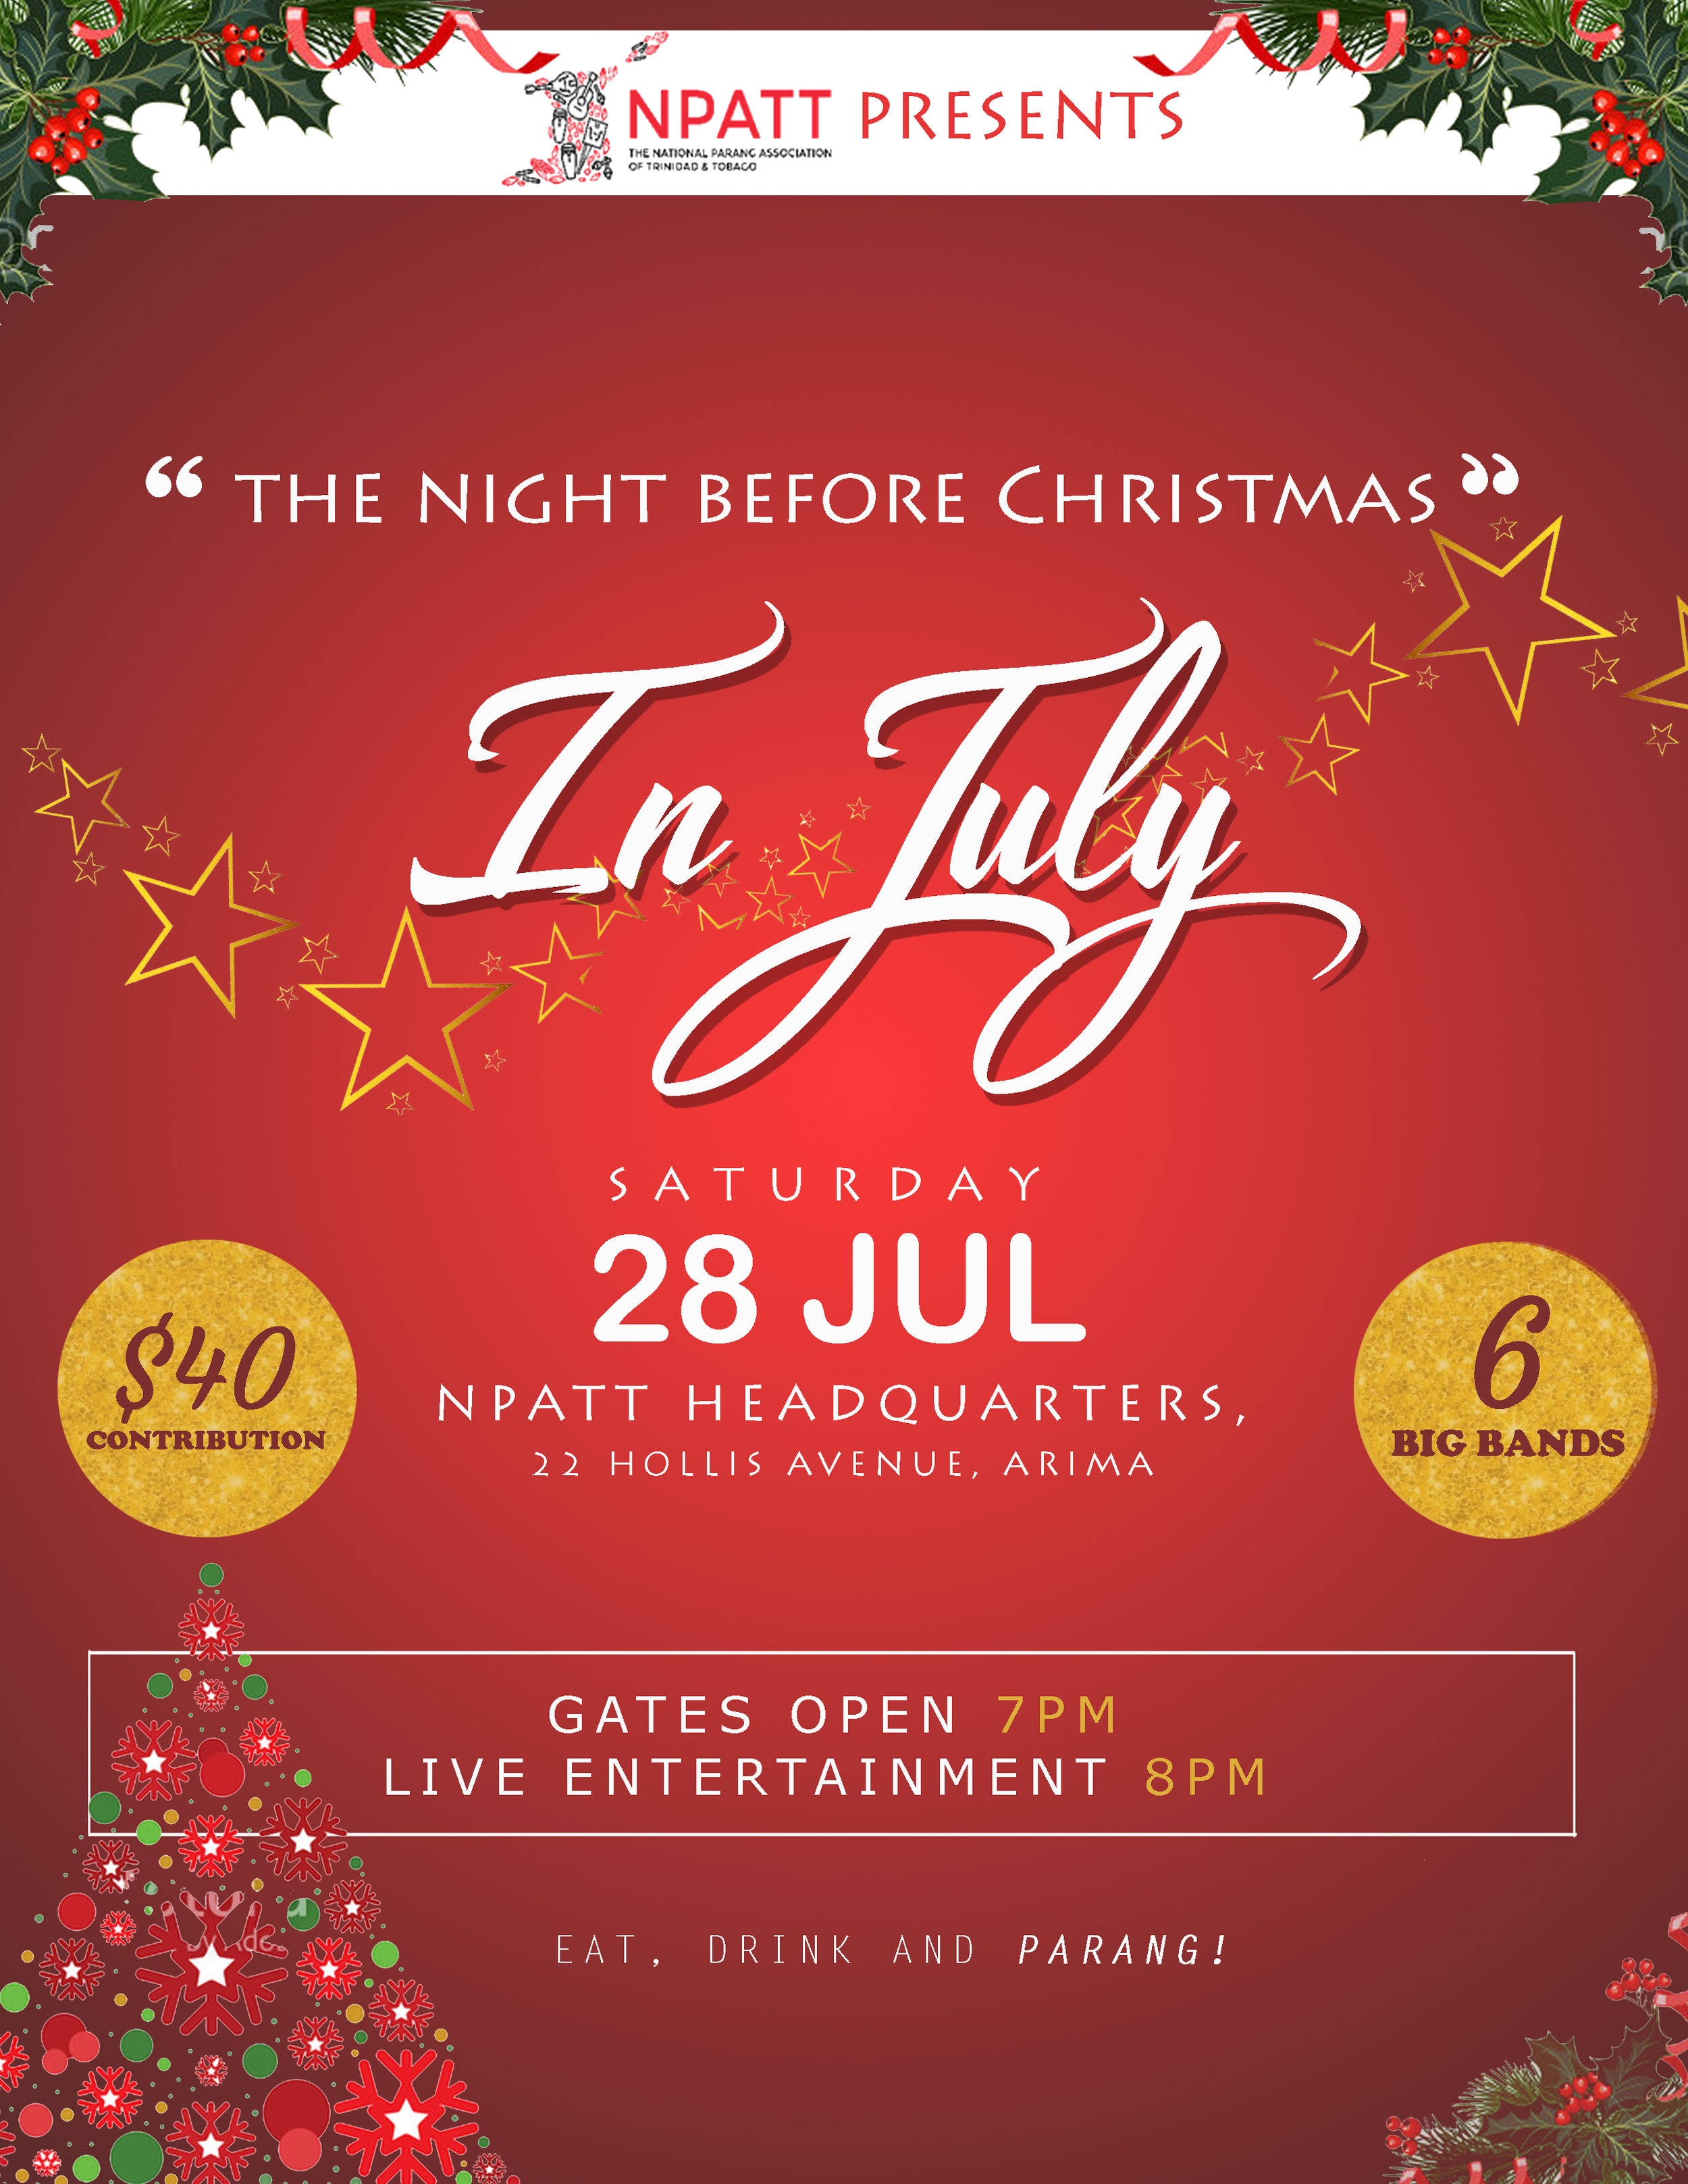 "The National Parang Association of Trinidad and Tobago brings to all Parang aficionados and lovers, a Fundraising Parang event like no other:  ""The night before Christmas"" in July  The stage is set and six of T&T's popular Parang bands are ready to entertain you at NPATT's rejuvenated 'Entertainment Spot' at the headquarters on, #22 Hollis Avenue, Arima. (Opposite the Velodrome).  Featuring:  1. Los Amigos Cantadores  2. La Casa De Parranda 3. Voces de Promesa 4. Voces Jovenes  5. Los Alumnos De San Juan 6. San Jose Serenaders   Six hours of pure Traditional Parang music in its true form, for a small contribution of just $40.  Come for your midyear dosage of Parang music with Christmas food and drinks on sale.  Walk with your Christmas tree decoration to put on display for the 2018 Parang Festival season, on NPATT's 'Parang tree of joy'  All dancers are welcome, and prizes can be won for the best dancing couple and many more...  Gates open: 7pm sharp Entertainment starts: 8pm sharp  'The night before Christmas' in July,   28th/July/2018  Be there or you Will regret it!   ¡Viva La Parranda! ¡Viva La Parranda! ¡Viva La Parranda! #Iamparangweareparang #Iamparangweareparang #Iamparangweareparang"